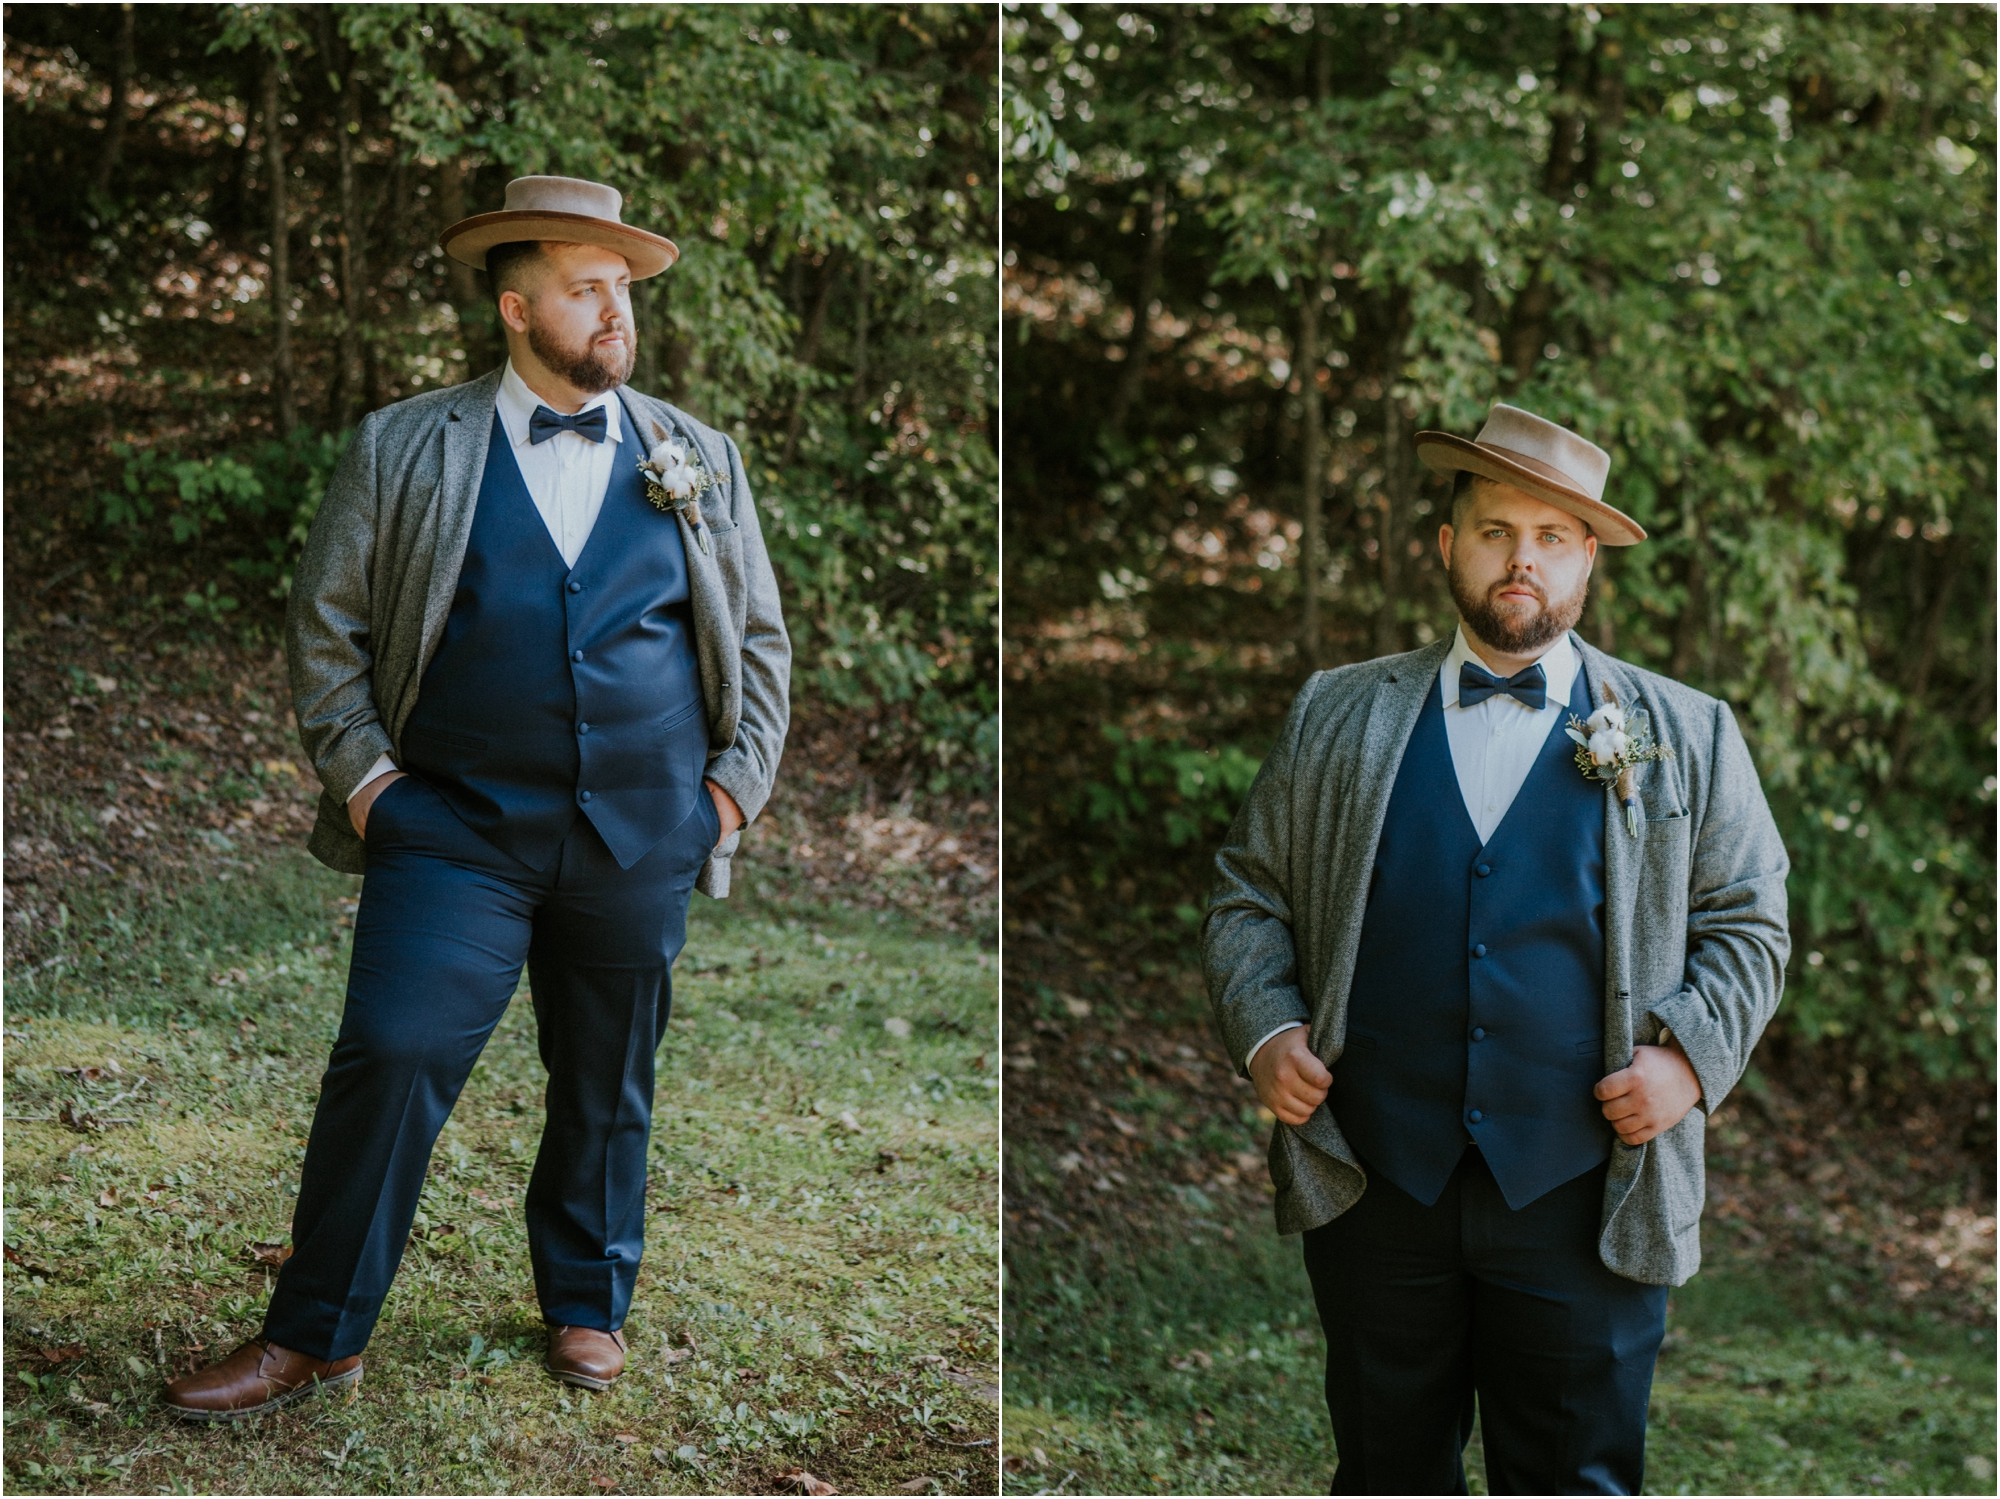 caryville-robbins-middle-tennessee-intimate-cozy-fall-navy-rustic-backyard-wedding_0034.jpg